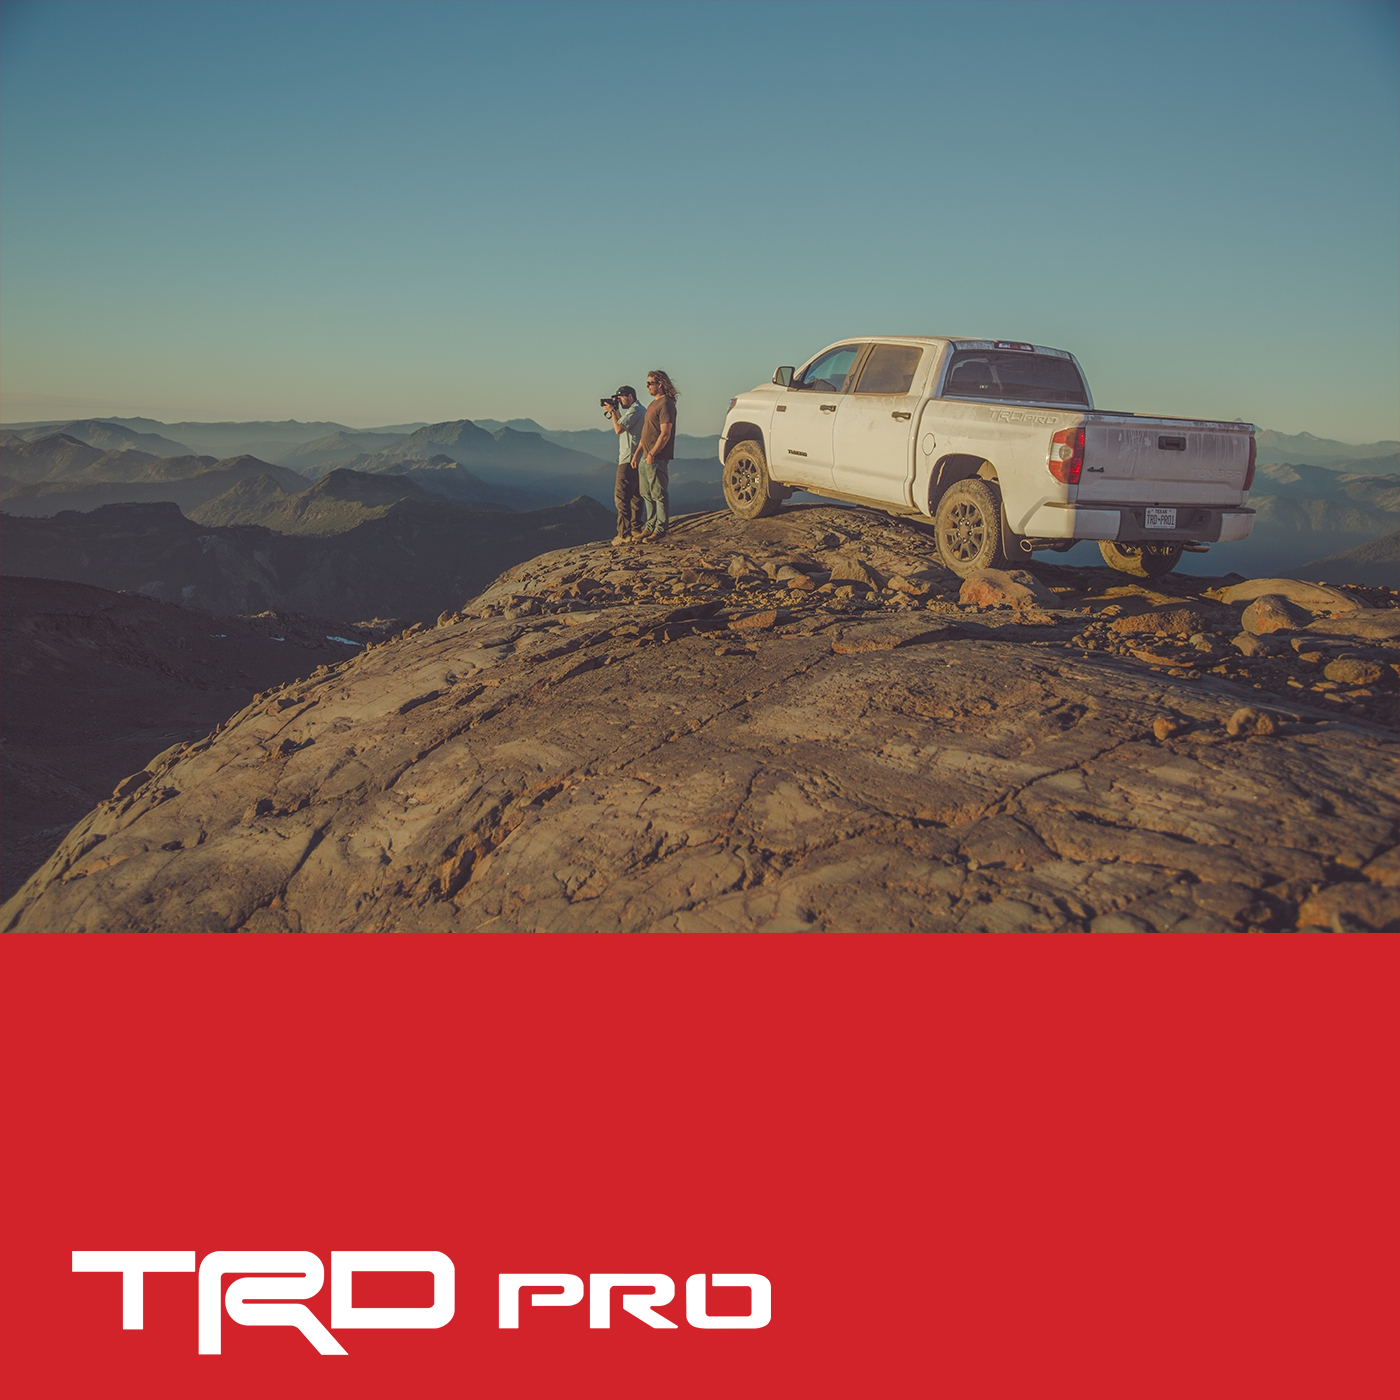 TOYOTA TRD PRO 2015 | VOLCANO HOPPING IN CHILE | HD